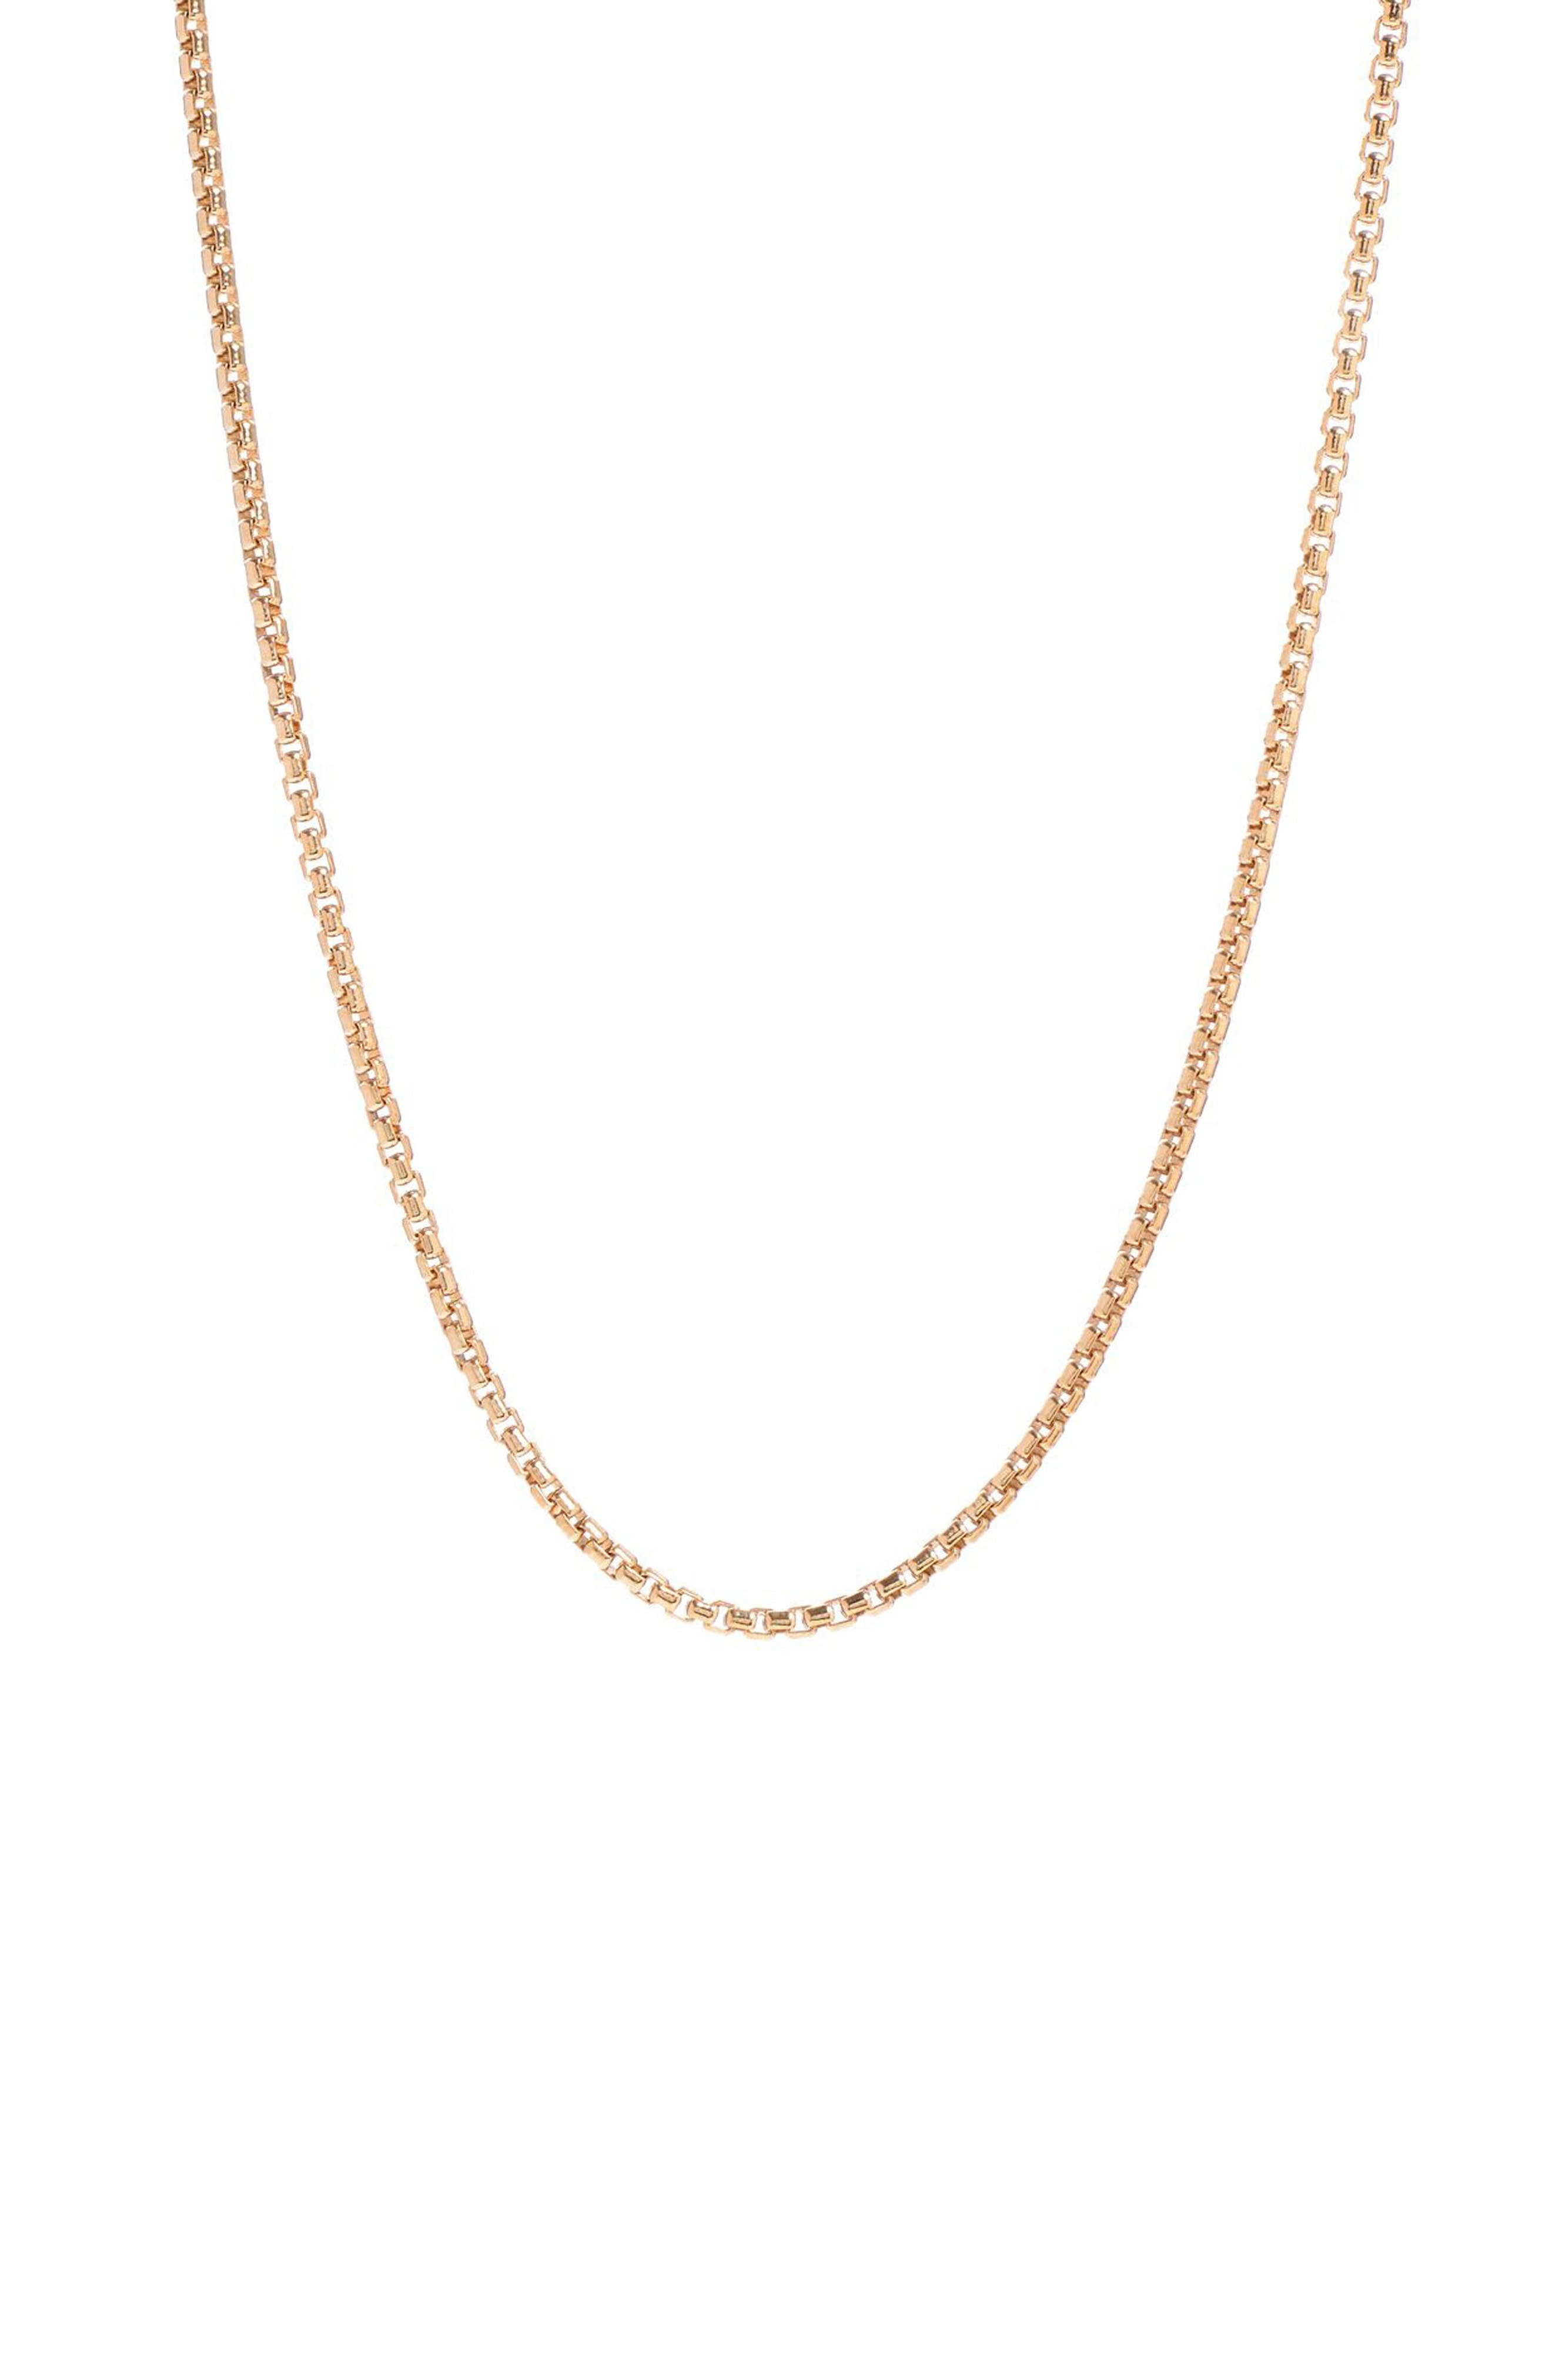 Box Chain Necklace,                             Main thumbnail 1, color,                             GOLD